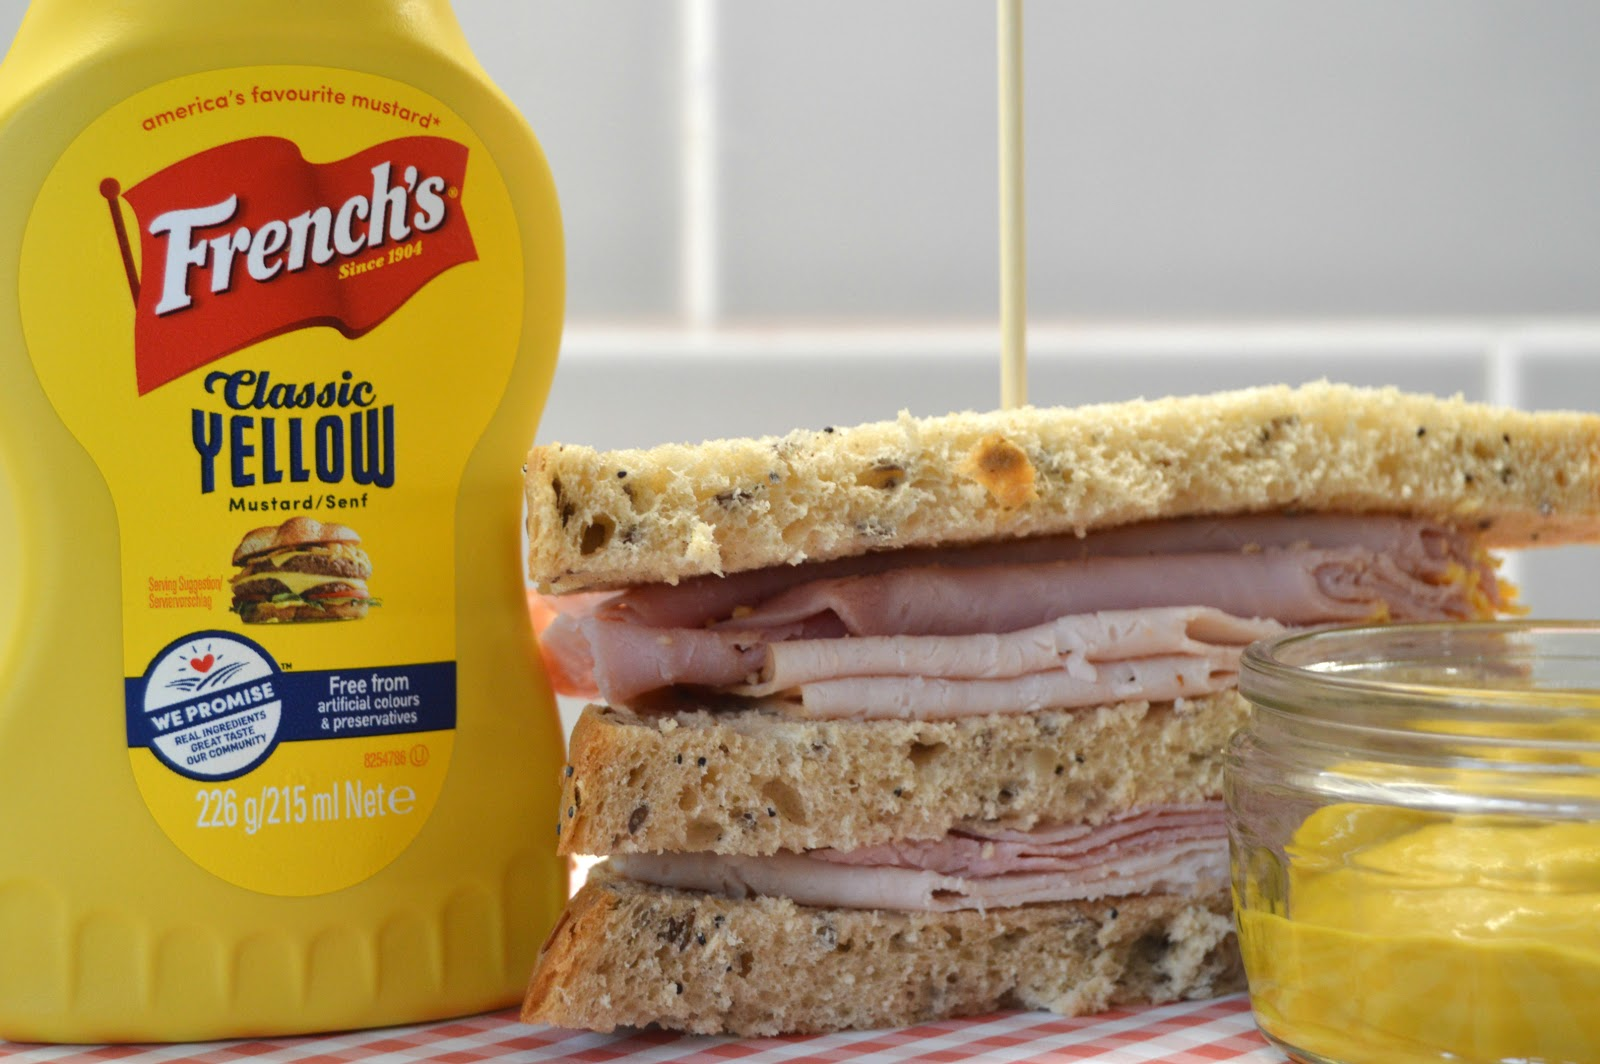 Club Sandwich and French's Mustard